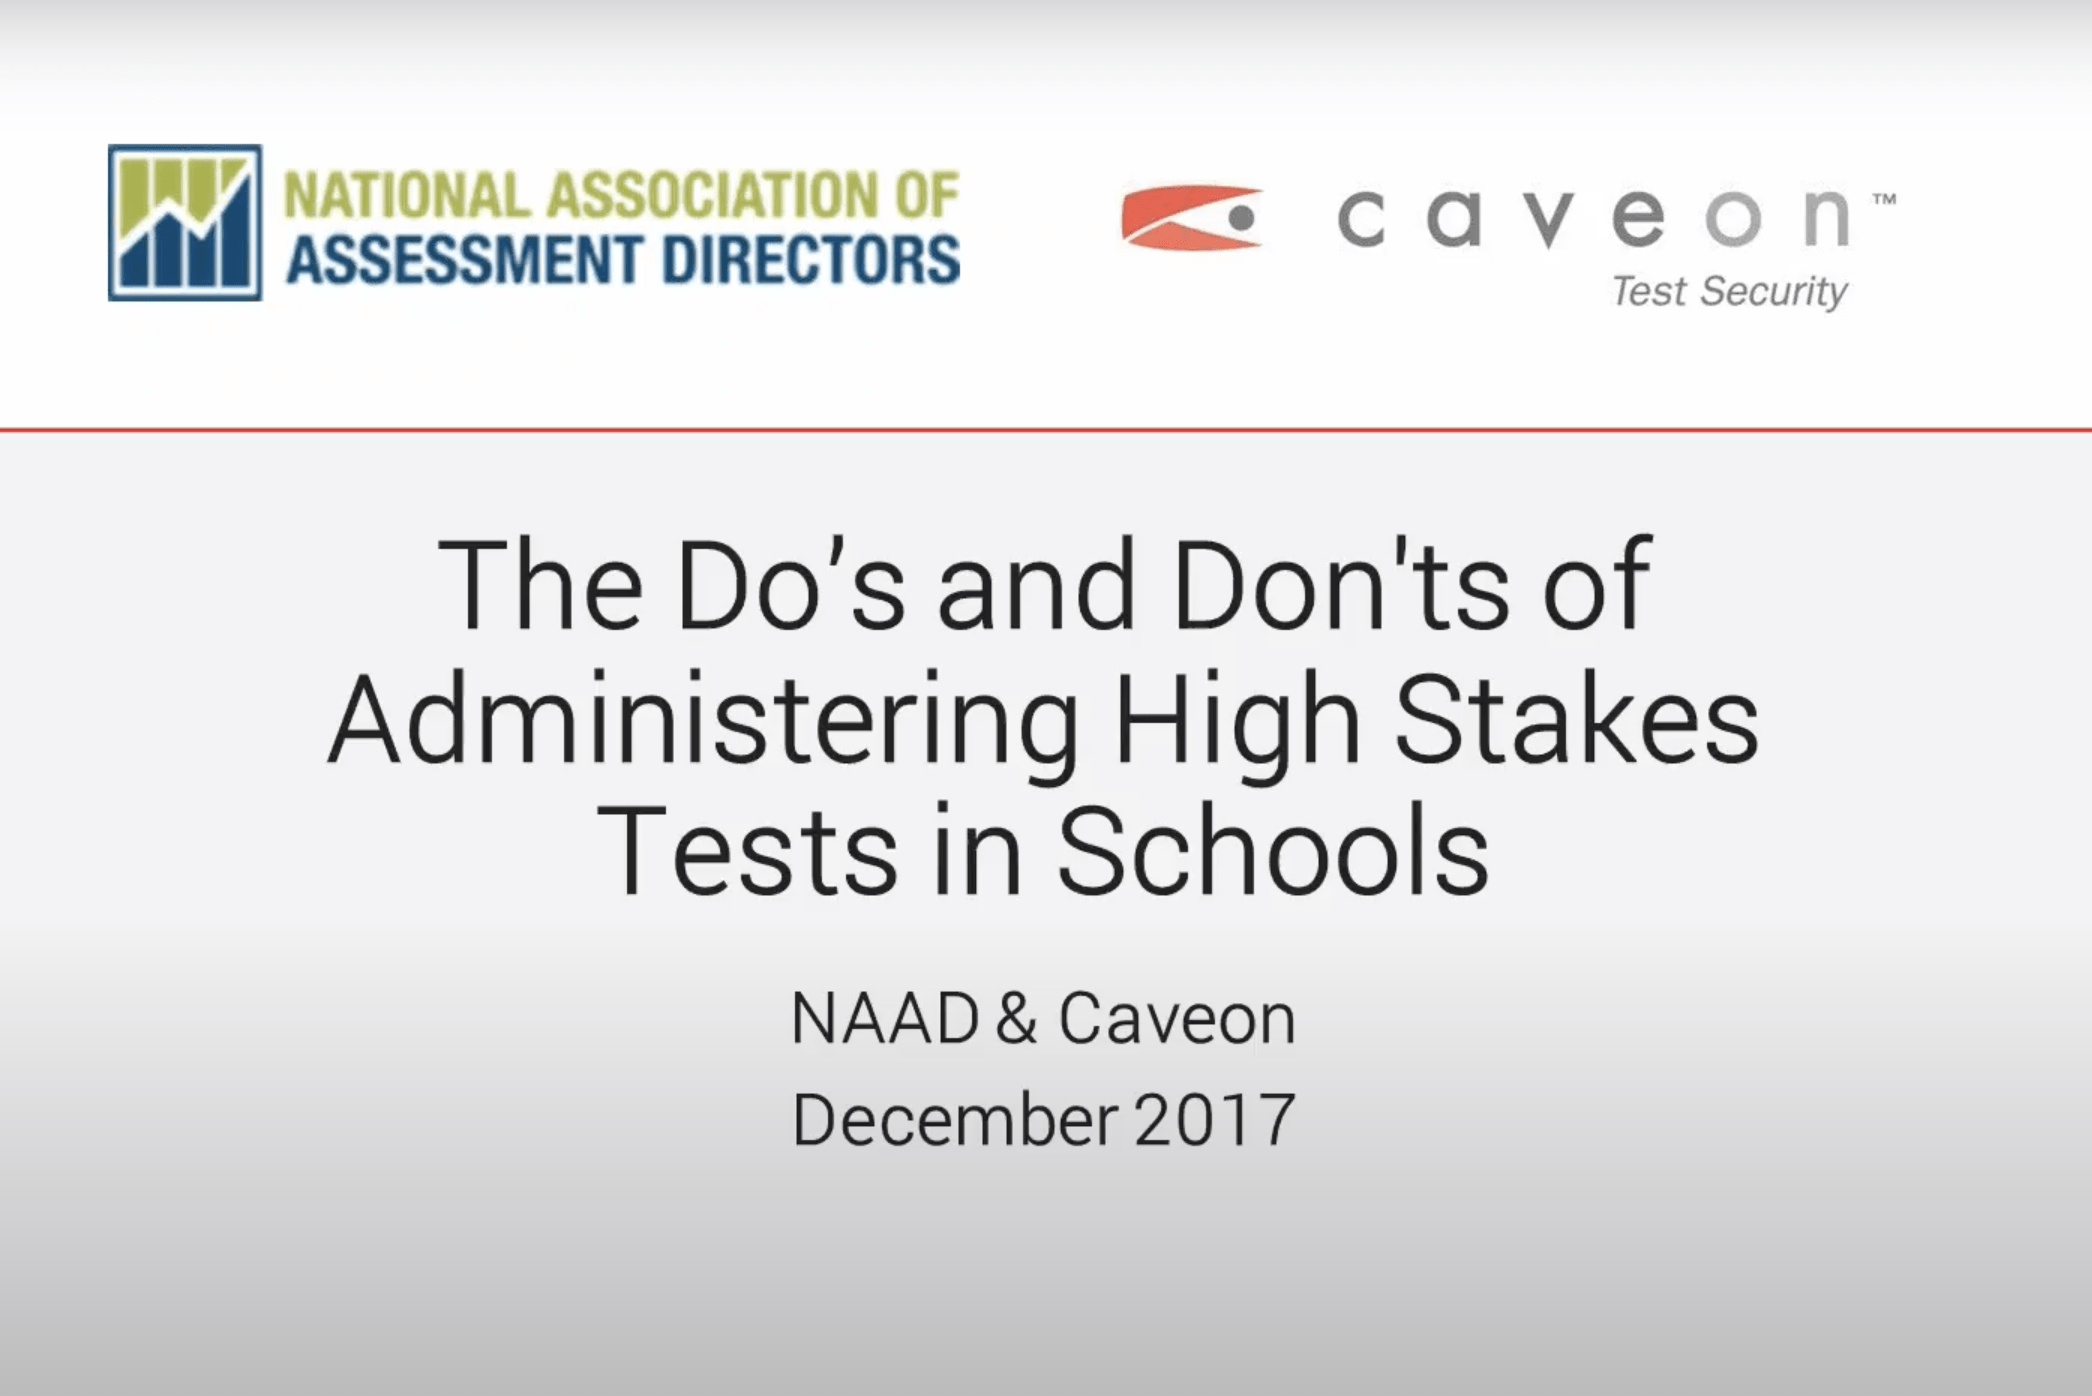 The Dos and Don'ts of Administering High-Stakes Tests in Schools